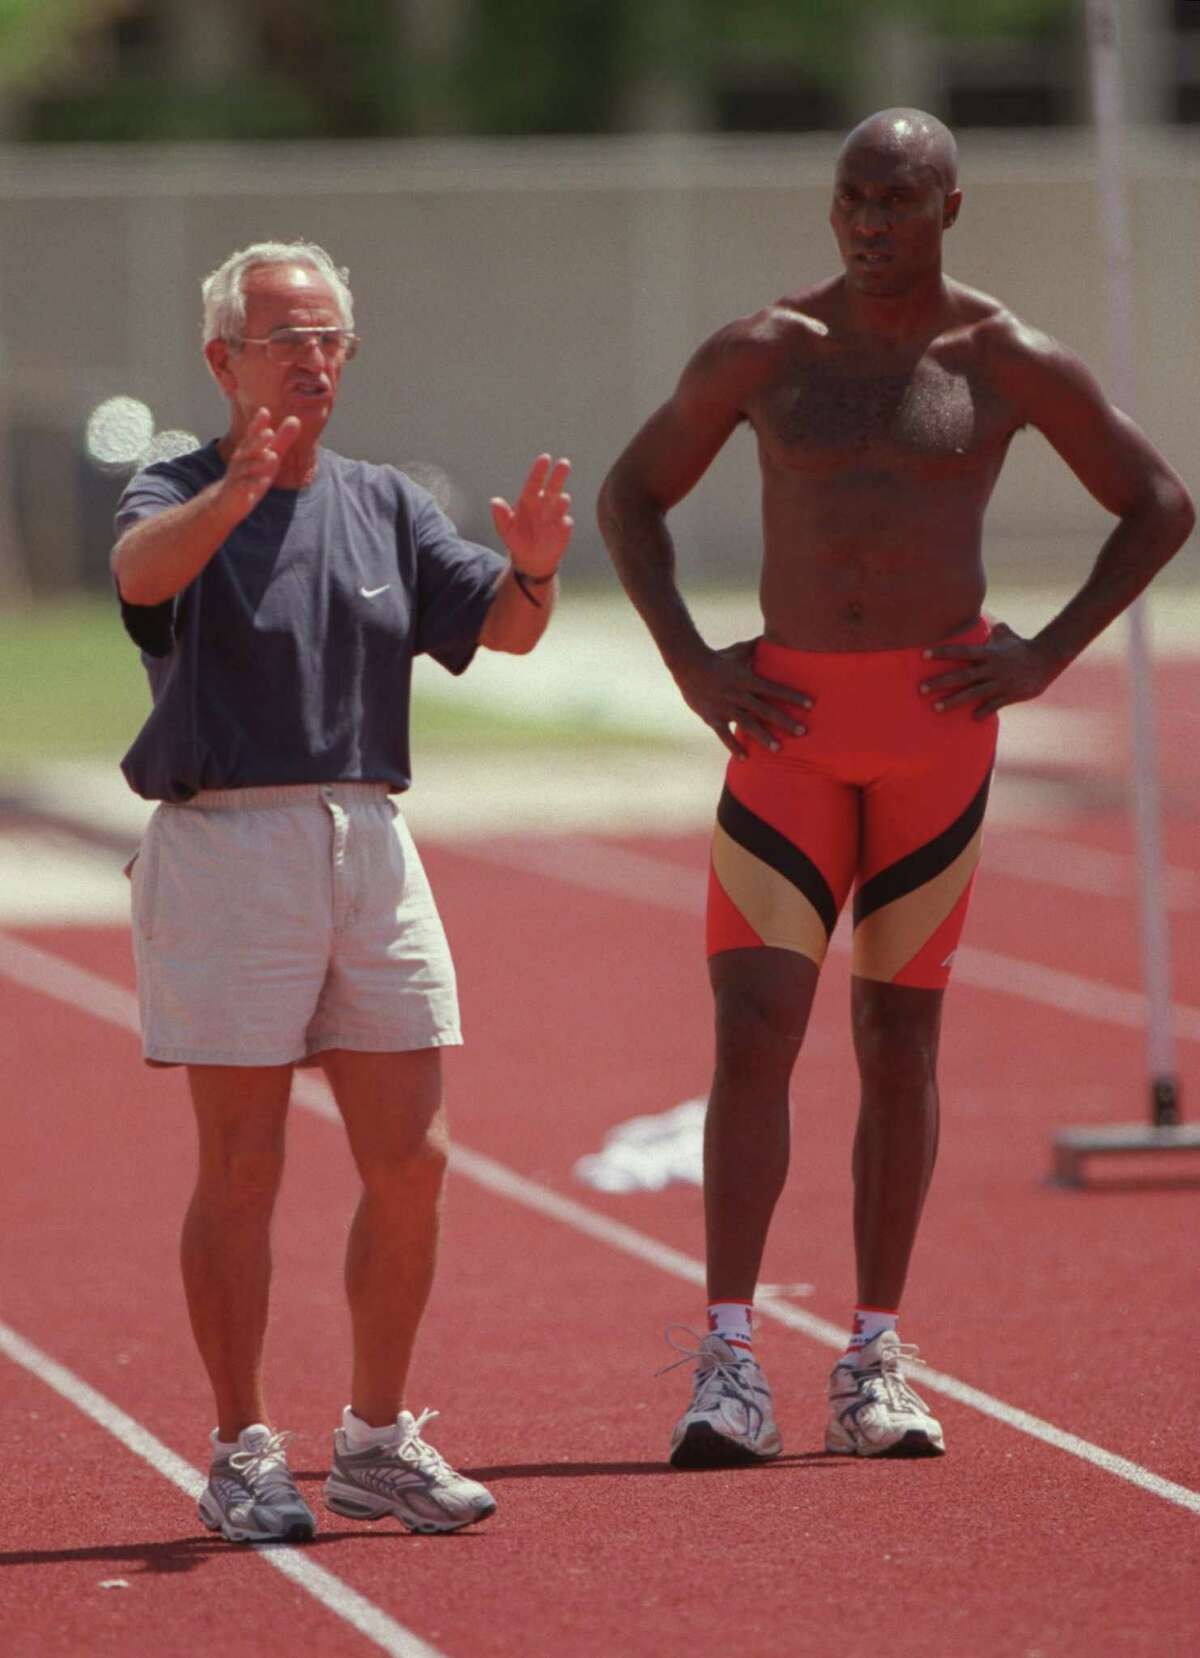 Tom Tellez, left, coaches Frank Rutherford, an Olympic Triple Jump Bronze Medalist, Frank Rutherford at the Carl Lewis Track Complex on the University of Houston campus Tuesday July 11, 2000. HOUCHRON CAPTION (07/12/2000): Meanwhile, at the same complex, Tellez offers some instruction to Frank Rutherford, an Olympic bronze medalist in the triple jump who is trying to qualify to represent the Bahamas again in the Summer Games.